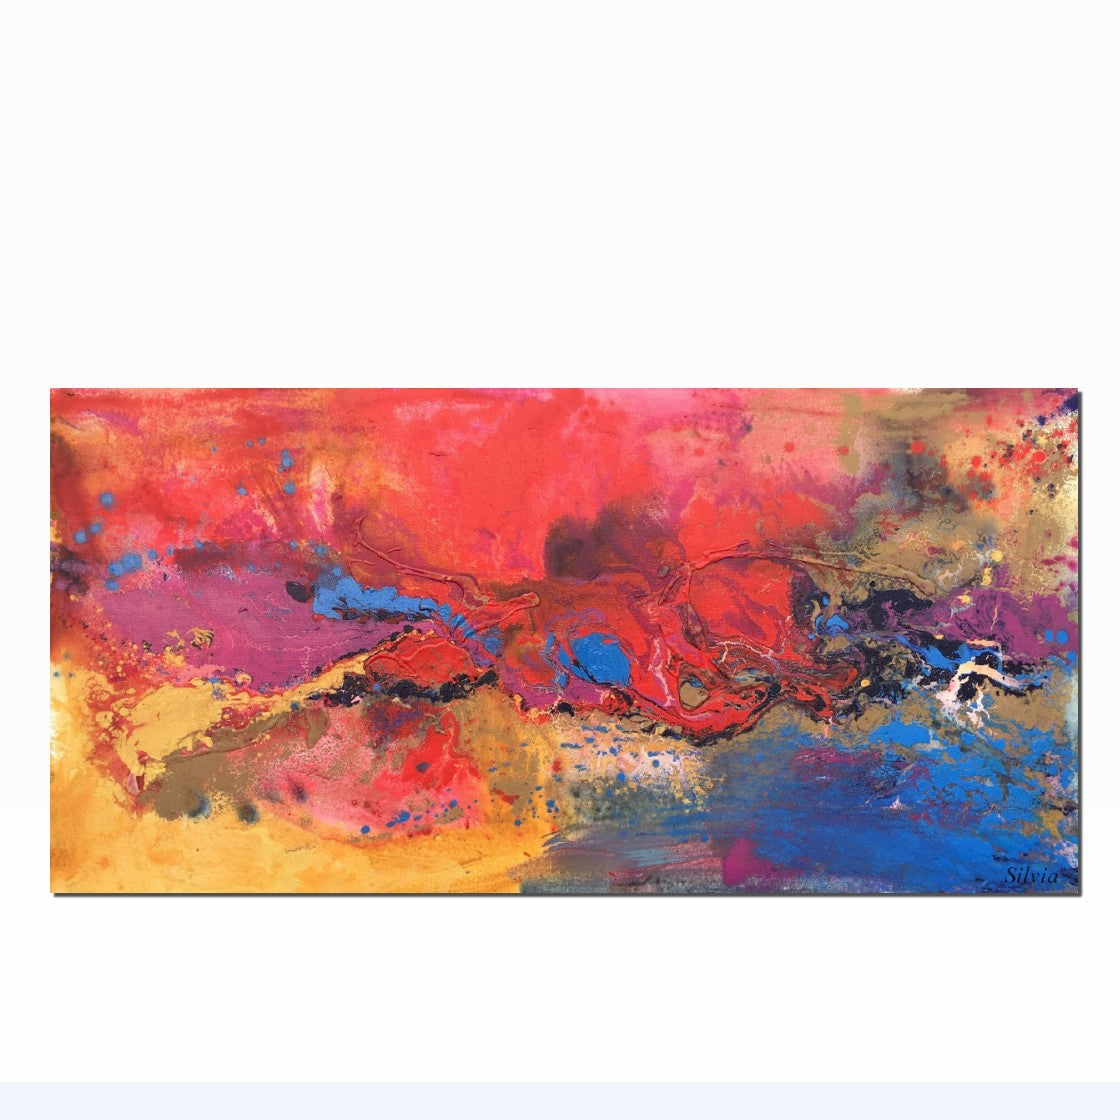 Large Abstract Painting, Original Abstract Painting, Wall Decor, Modern Painting, Painting Abstract, Bedroom Decor, Abstract Canvas Painting